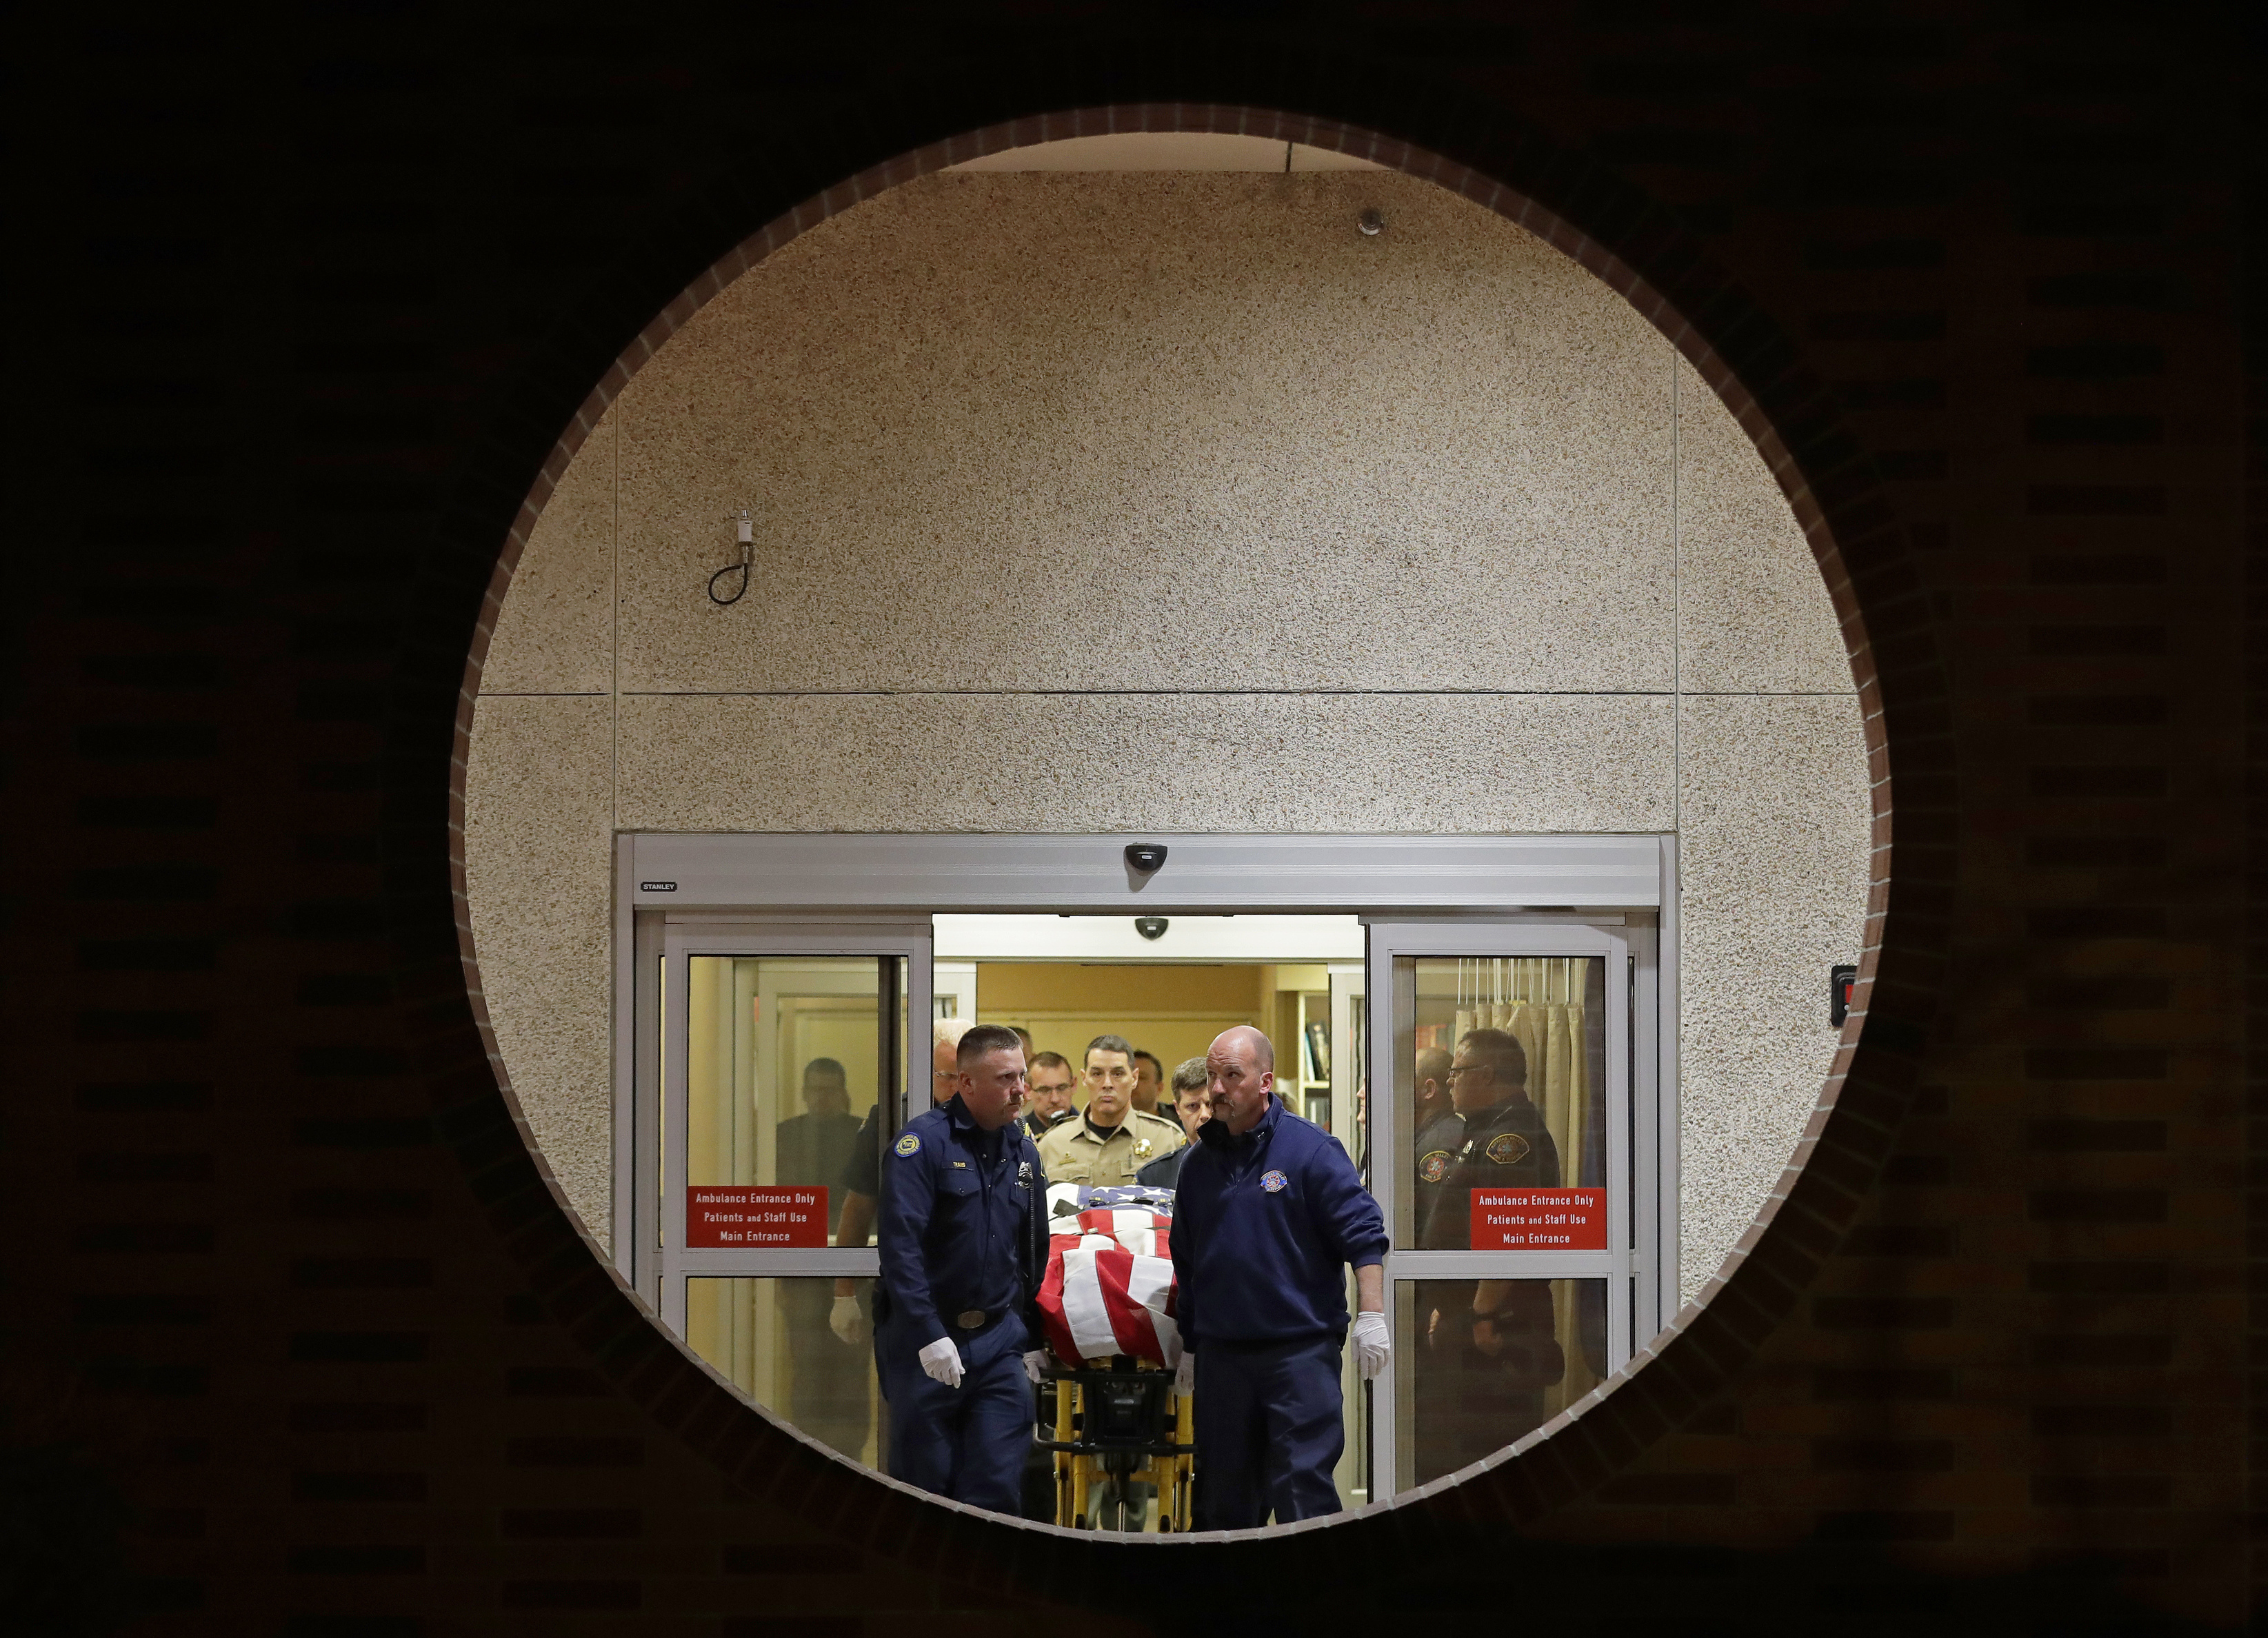 The body of a Kittitas County Sheriff's deputy is draped with a U.S. flag as it is carried out of Kittitas Valley Healthcare Hospital in the early morning hours of Wednesday, March 20, 2019, in Ellensburg, Wash., as seen through a large circular entry window. A sheriff's deputy was killed and a police officer was injured after an exchange of gunfire during an attempted traffic stop. (AP Photo/Ted S. Warren)